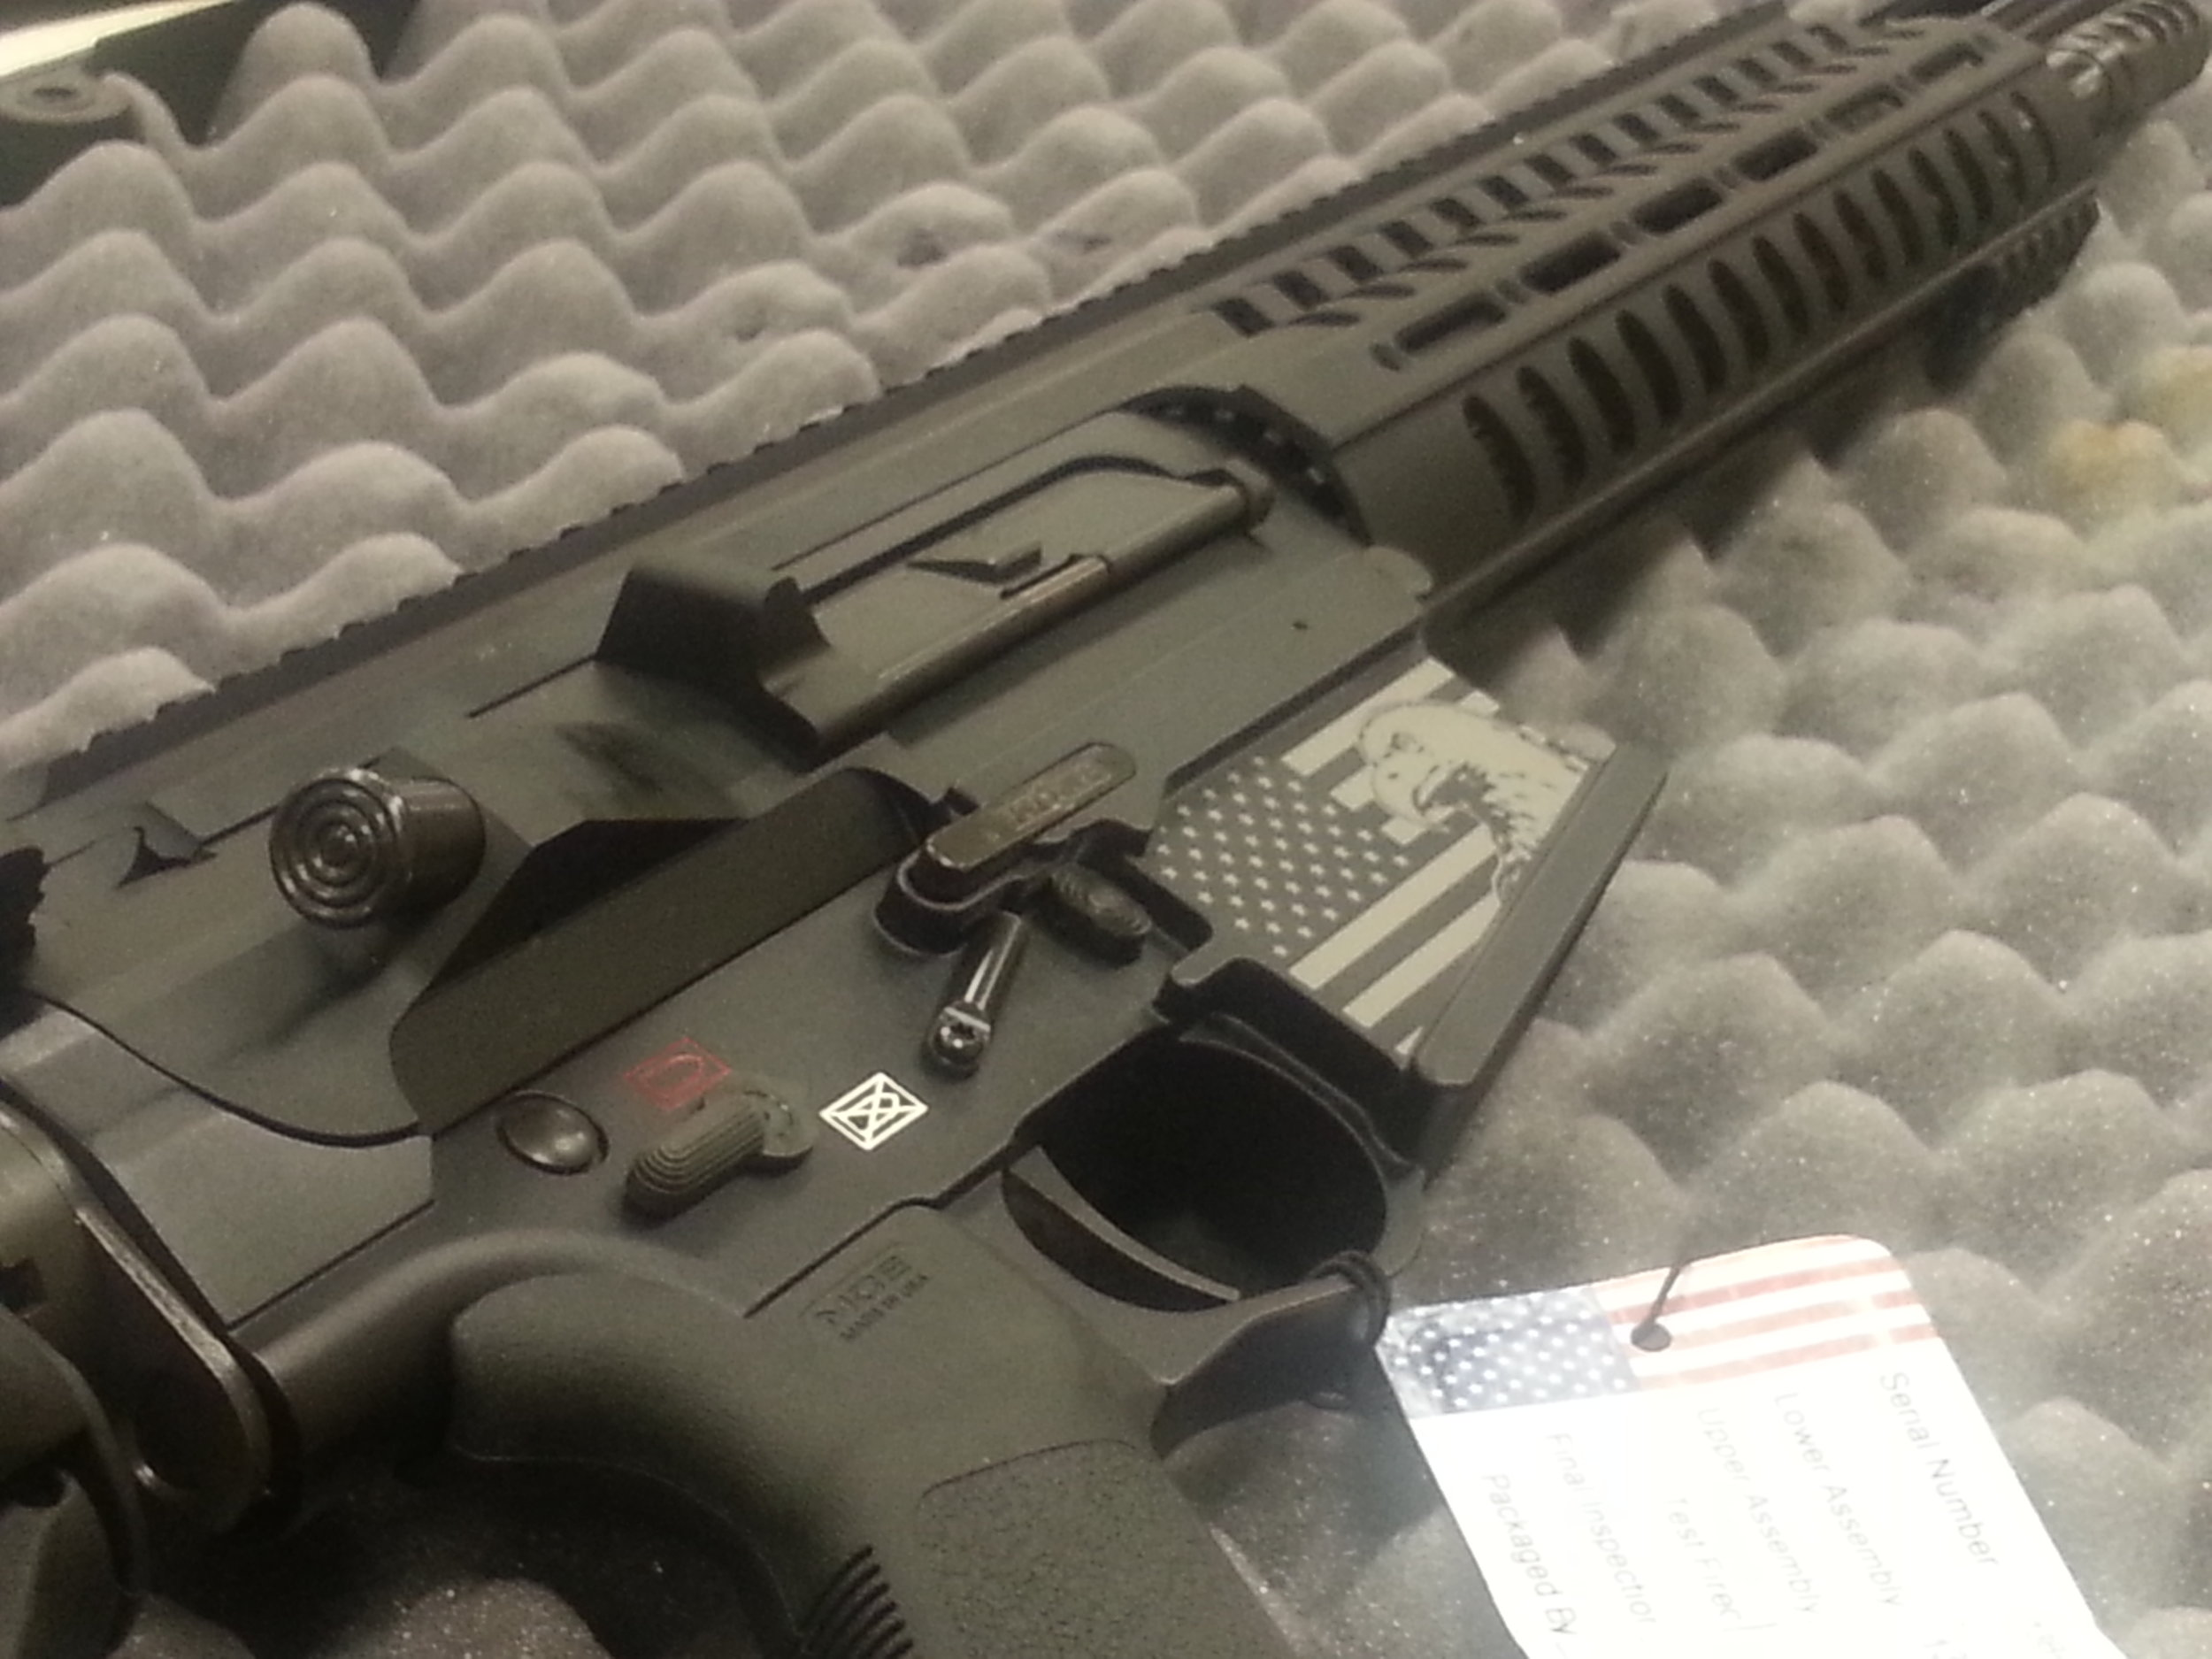 Custom Engraved Assault Rifle - Personalized Assault Rifle Engraving - Firearm Projects from Engrave It Houston